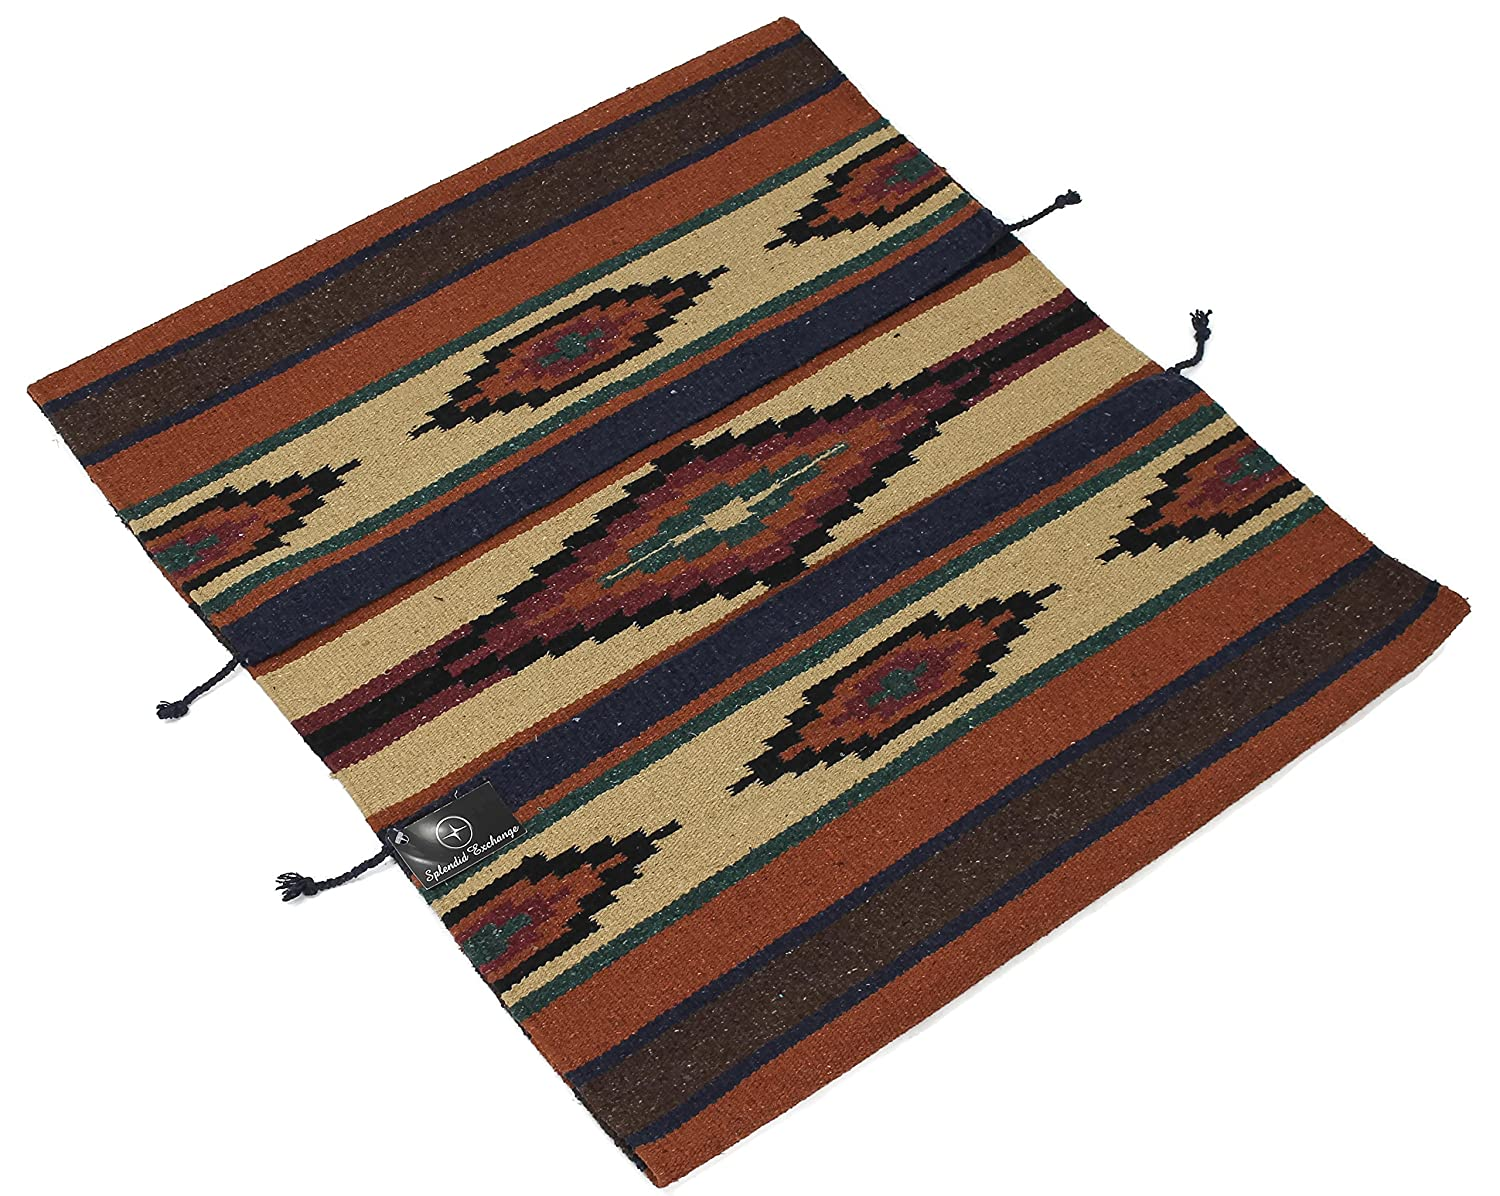 Splendid Exchange Hand Woven Southwest Area Rug Dark Brown and Tuscany Red 2.7 by 5.3 Foot